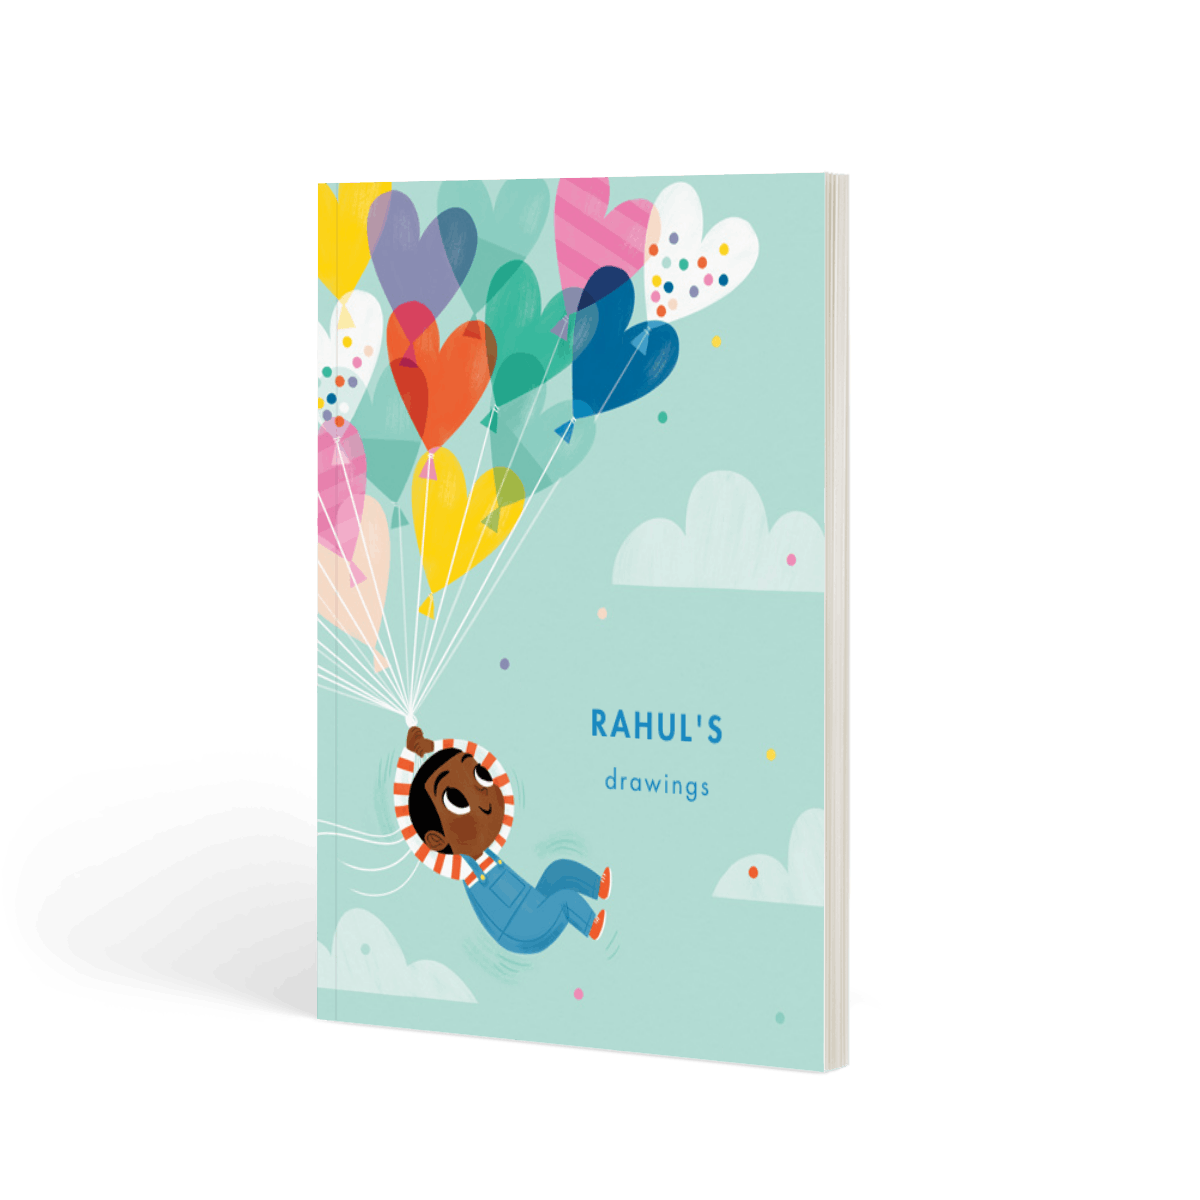 Https%3a%2f%2fwww.papier.com%2fproduct image%2f31709%2f3%2fballoon boy i 7966 front 1511526654.png?ixlib=rb 1.1